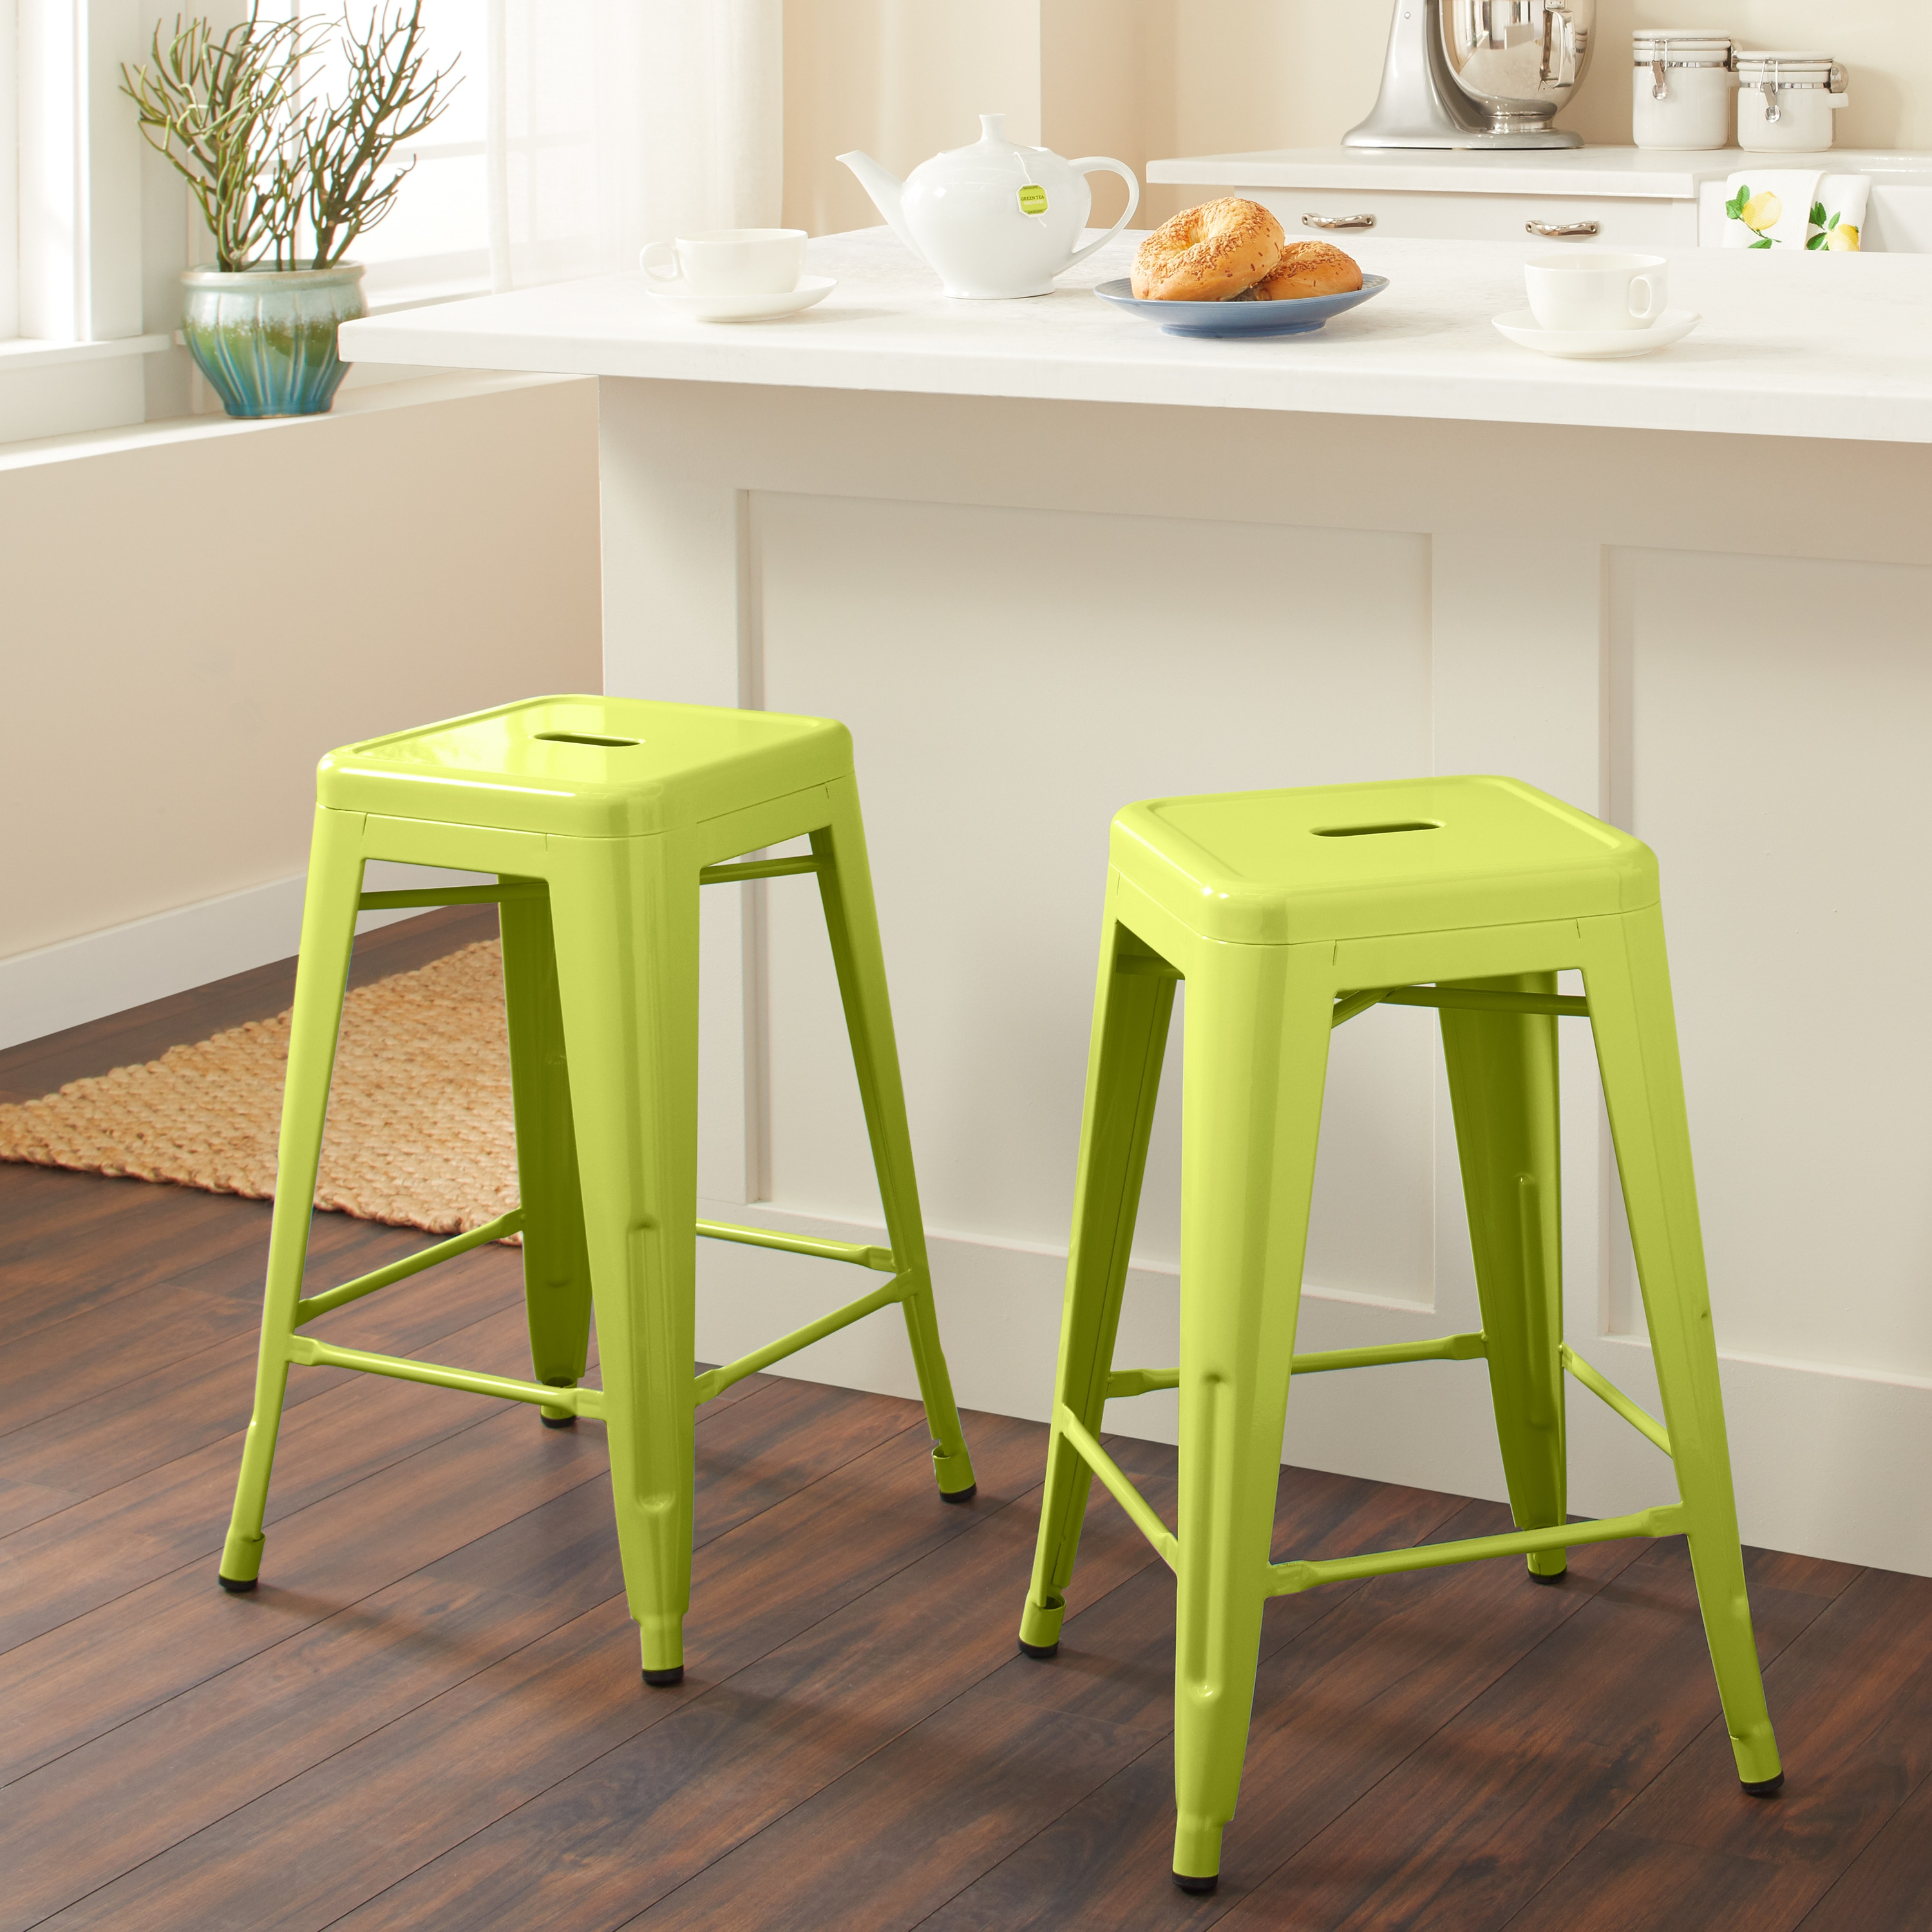 Shop tabouret 24 inch limeade metal counter stools set of 2 free shipping today overstock com 6459285